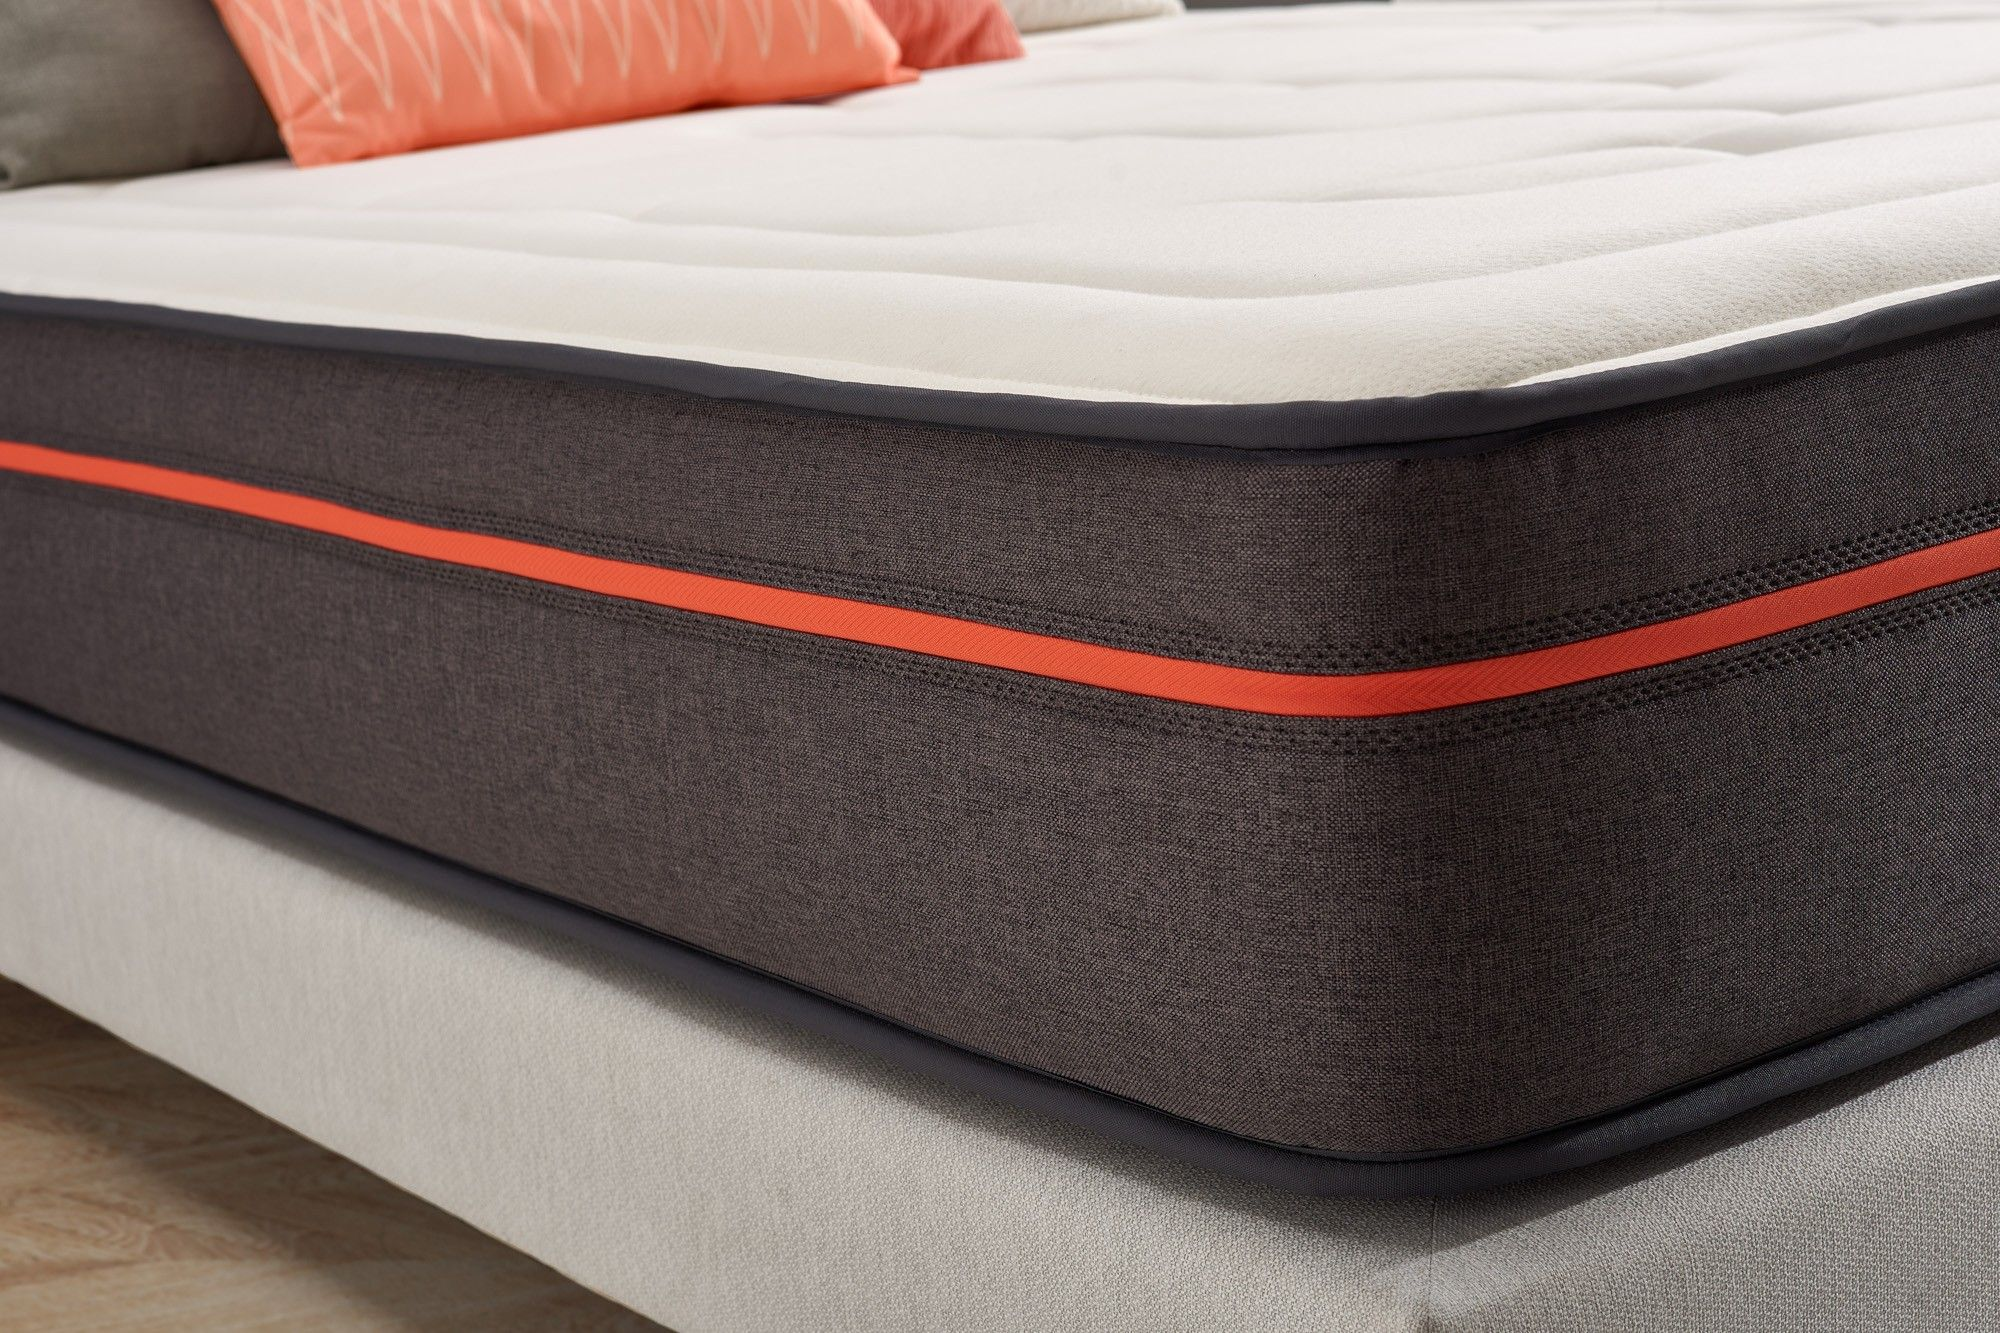 Memofeel open structure foam ensures a soft and progressive welcome combined with Blue Latex technology.